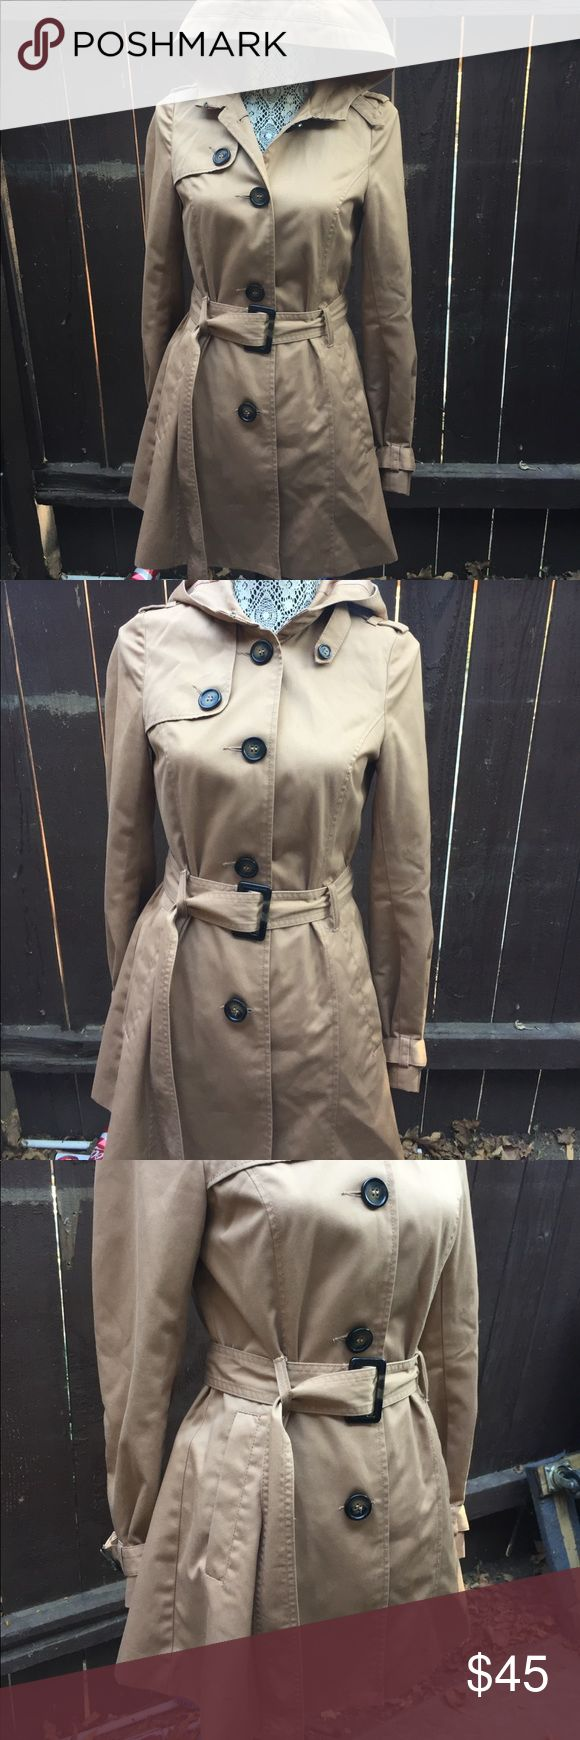 H&M women's Rain trench Coat H&M women's Rain Coat -size 6 - light brown- •65%polyester •35% cotton •lining 100%polyester H&M Jackets & Coats Trench Coats